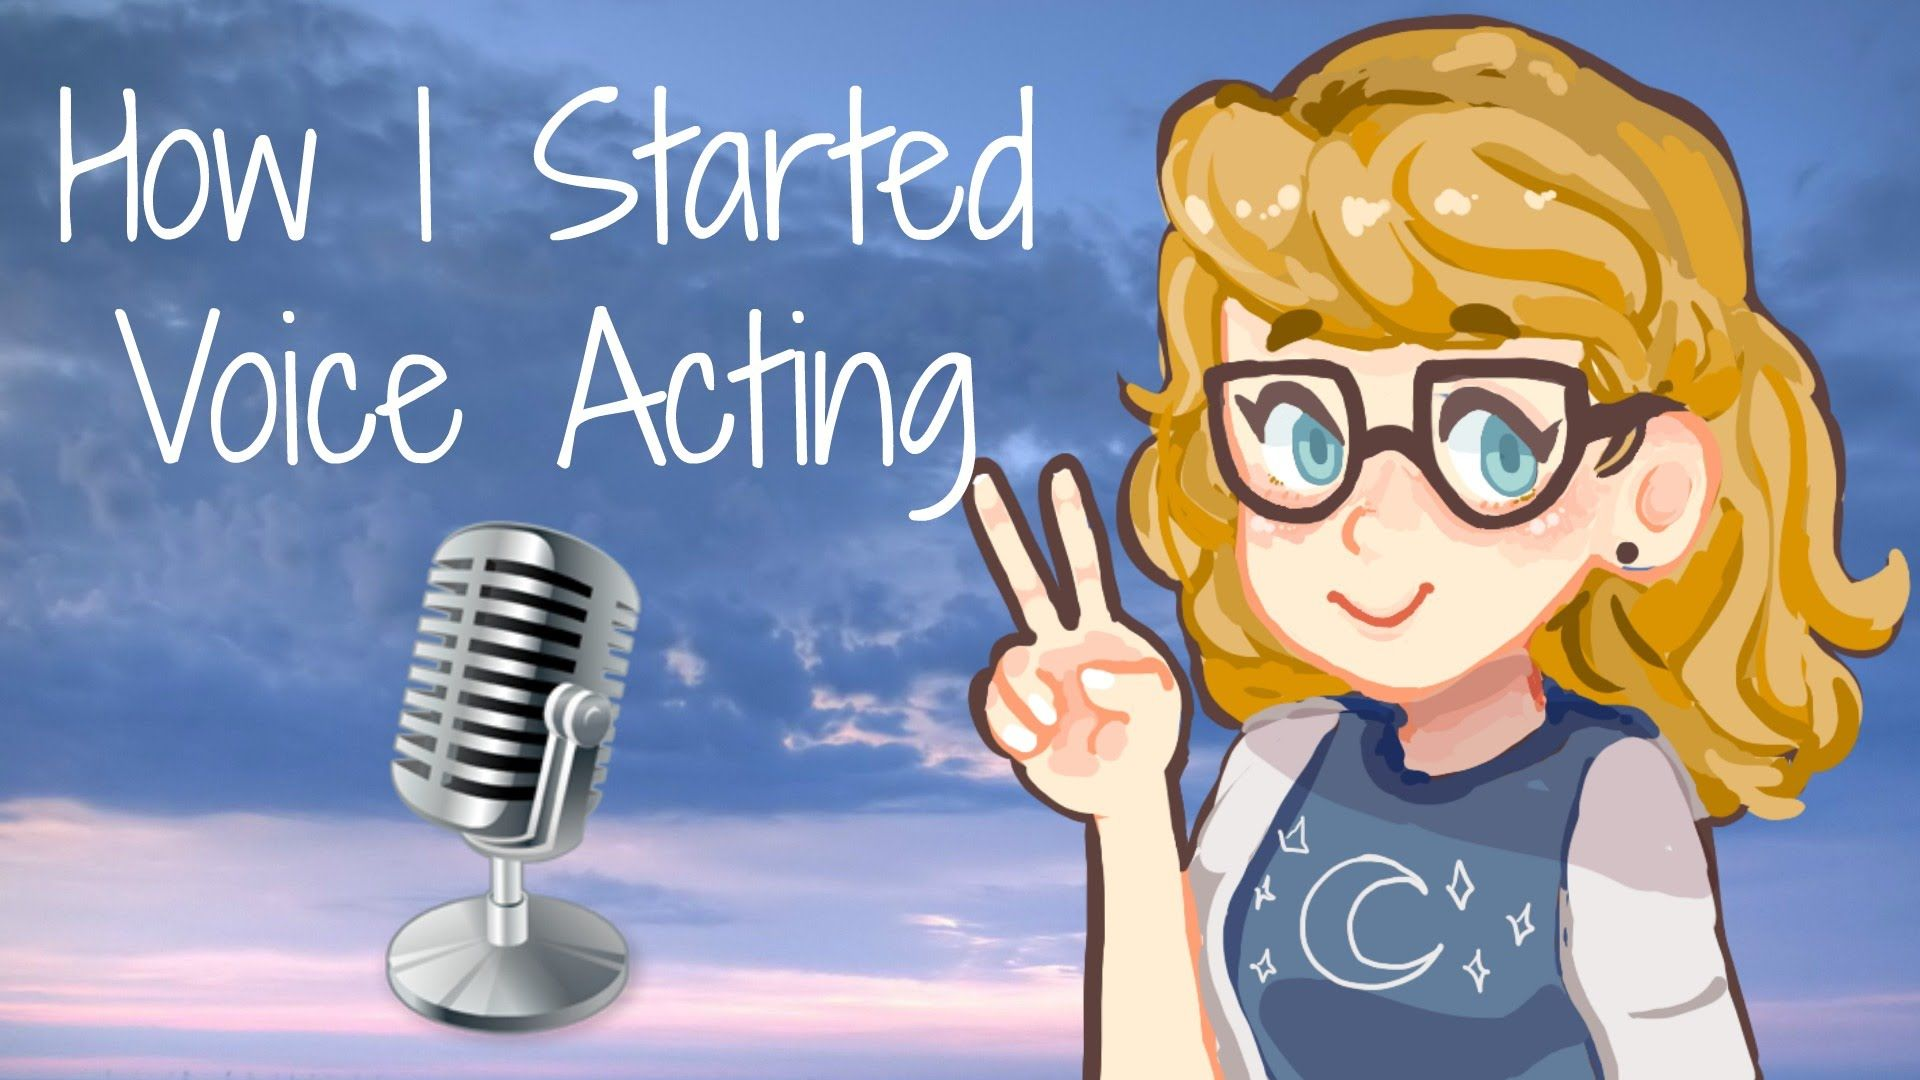 How i started voice acting voice acting the voice acting